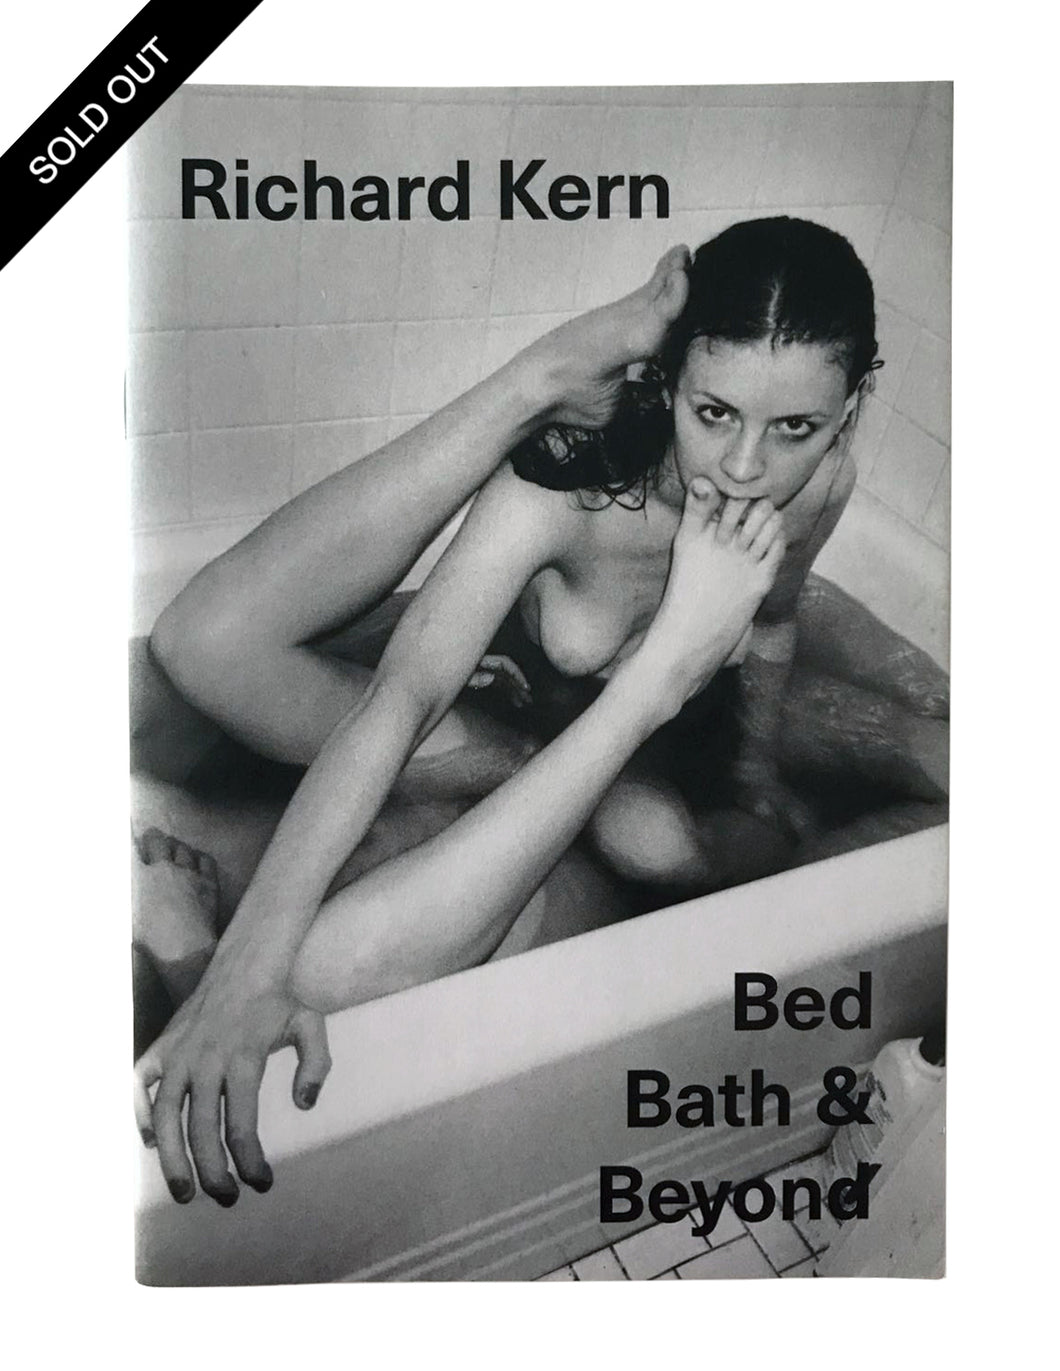 [Signed] Bed, Bath & Beyond, Richard Kern